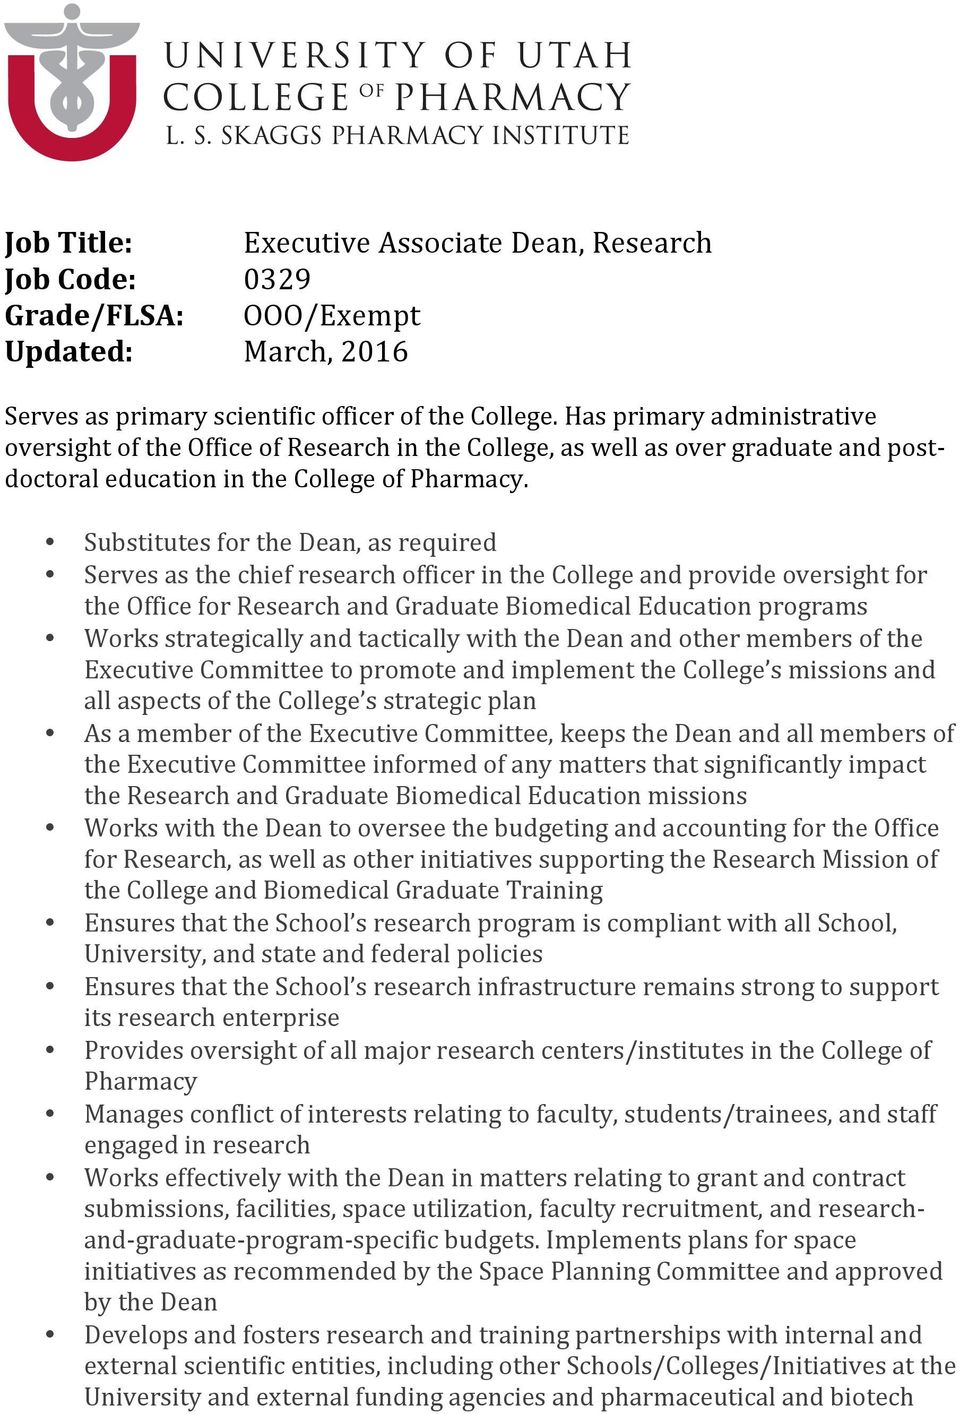 Substitutes for the Dean, as required Serves as the chief research officer in the College and provide oversight for the Office for Research and Graduate Biomedical Education programs Works